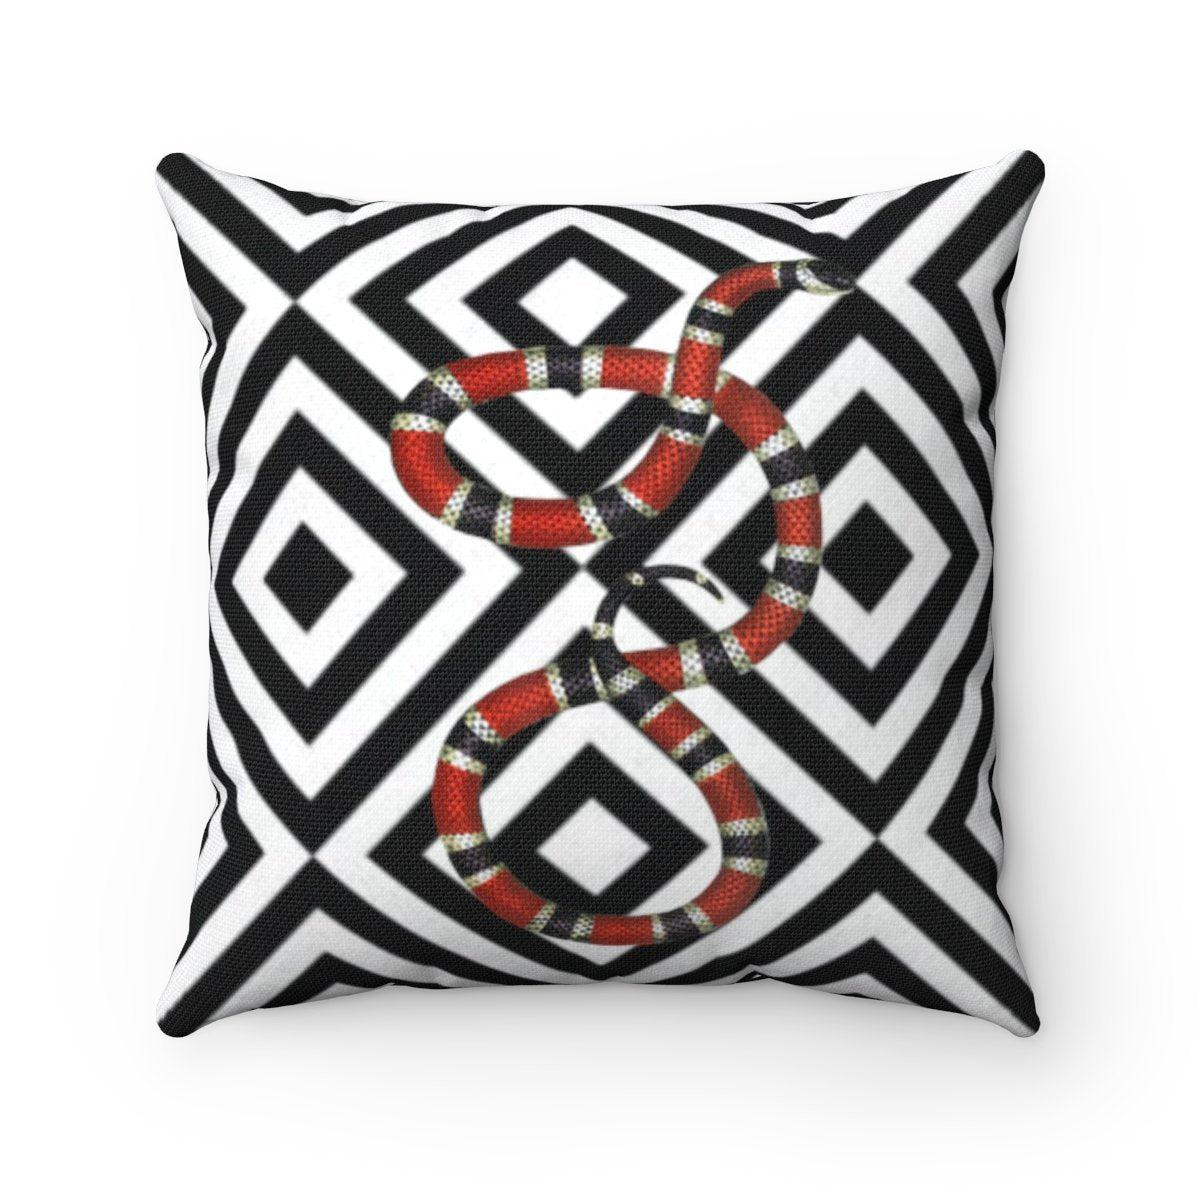 Luxury | snake | tropical | jungle abstract decorative cushion cover-Home Decor-Maison d'Elite-14x14-Très Elite